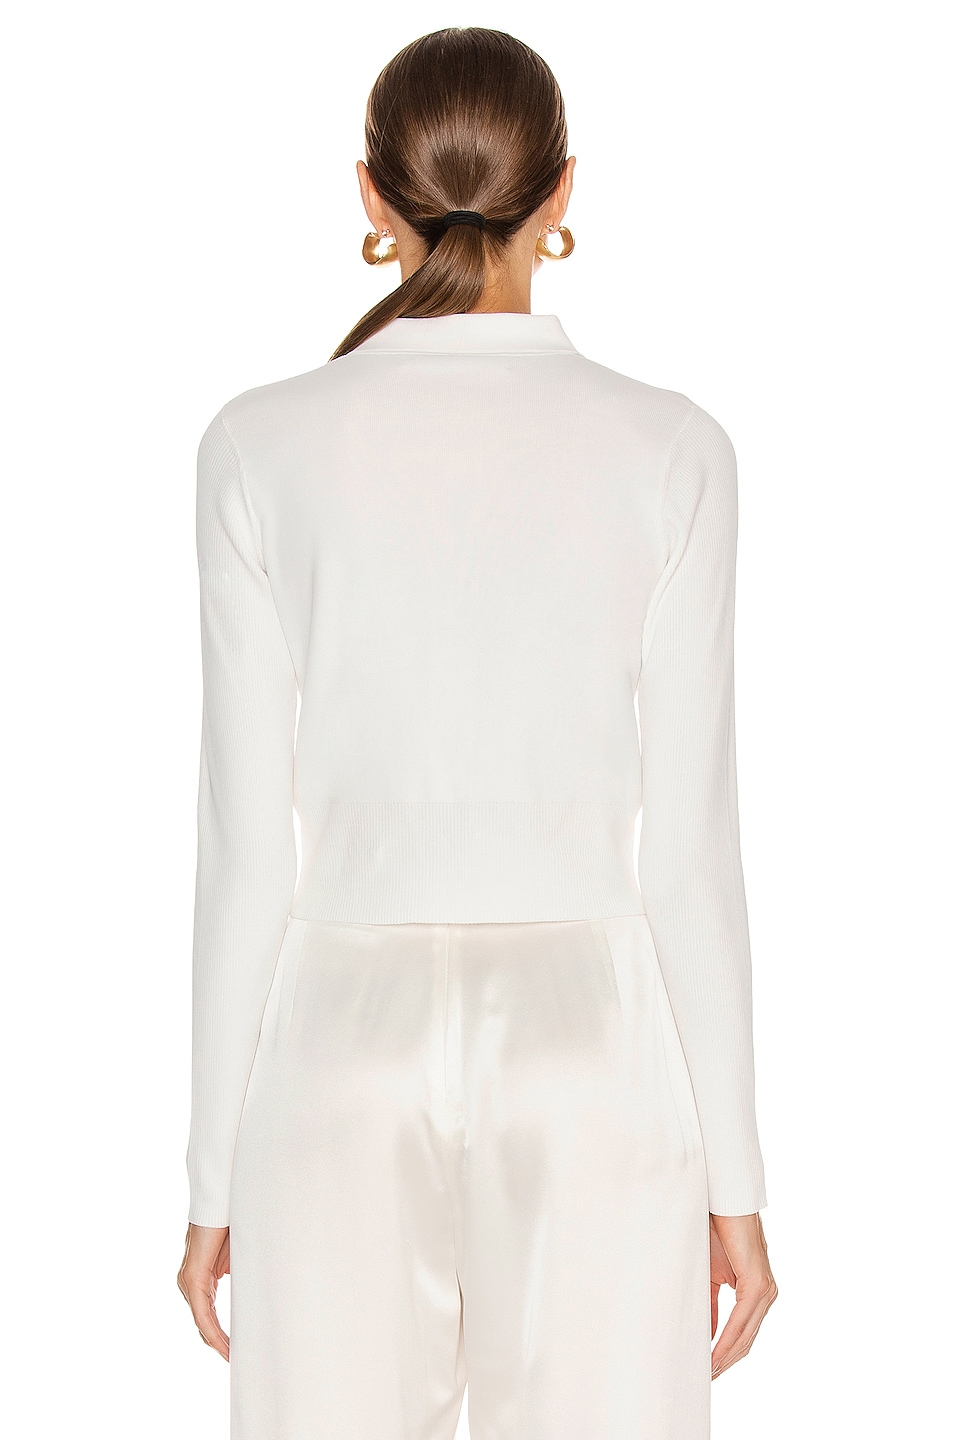 Image 3 of Dion Lee Density Cropped Cardigan Top in Ivory